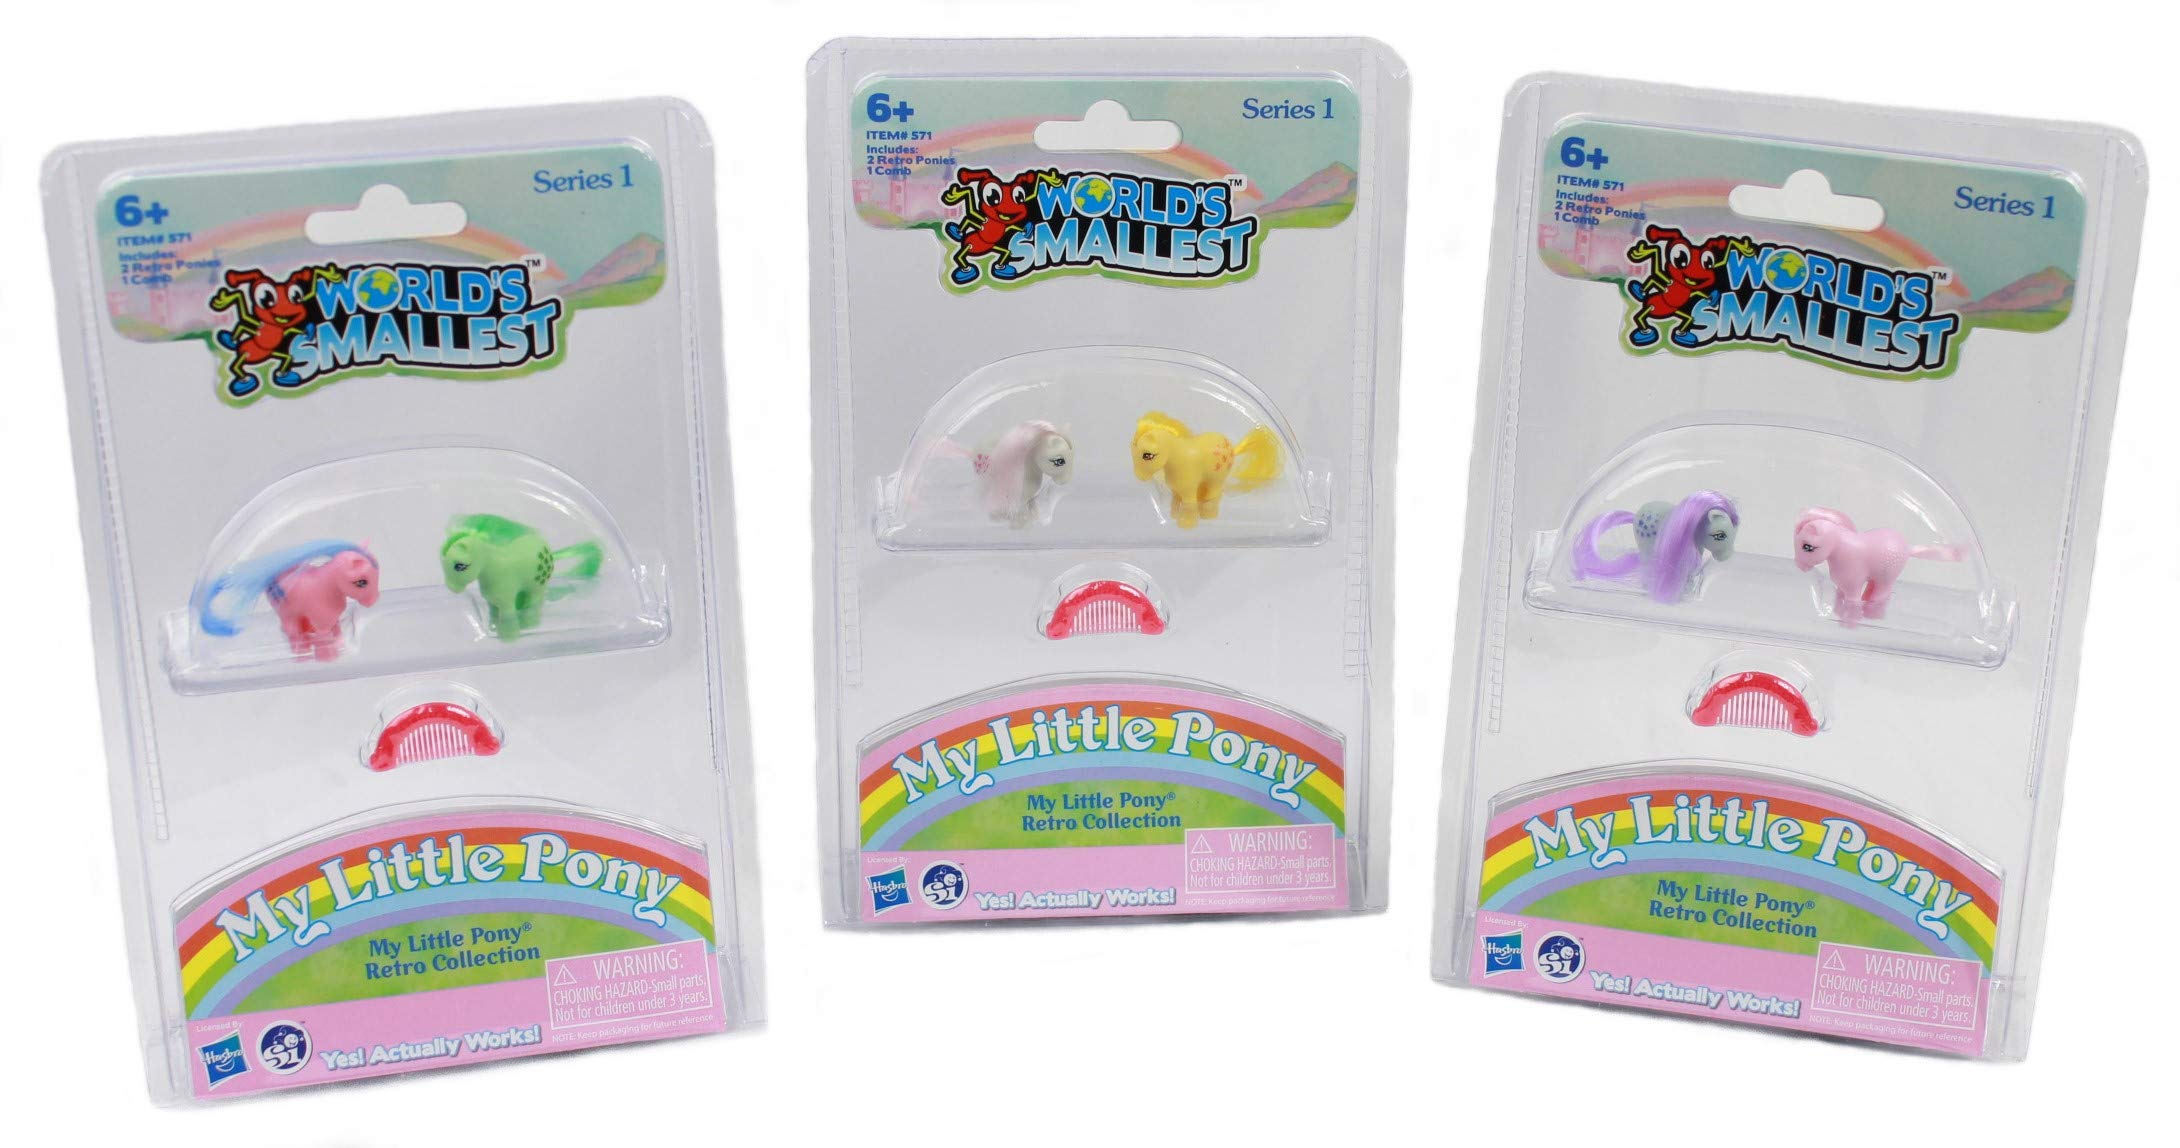 Worlds Smallest My Little Pony Retro Collection Series 1 Complete Set - Bundle